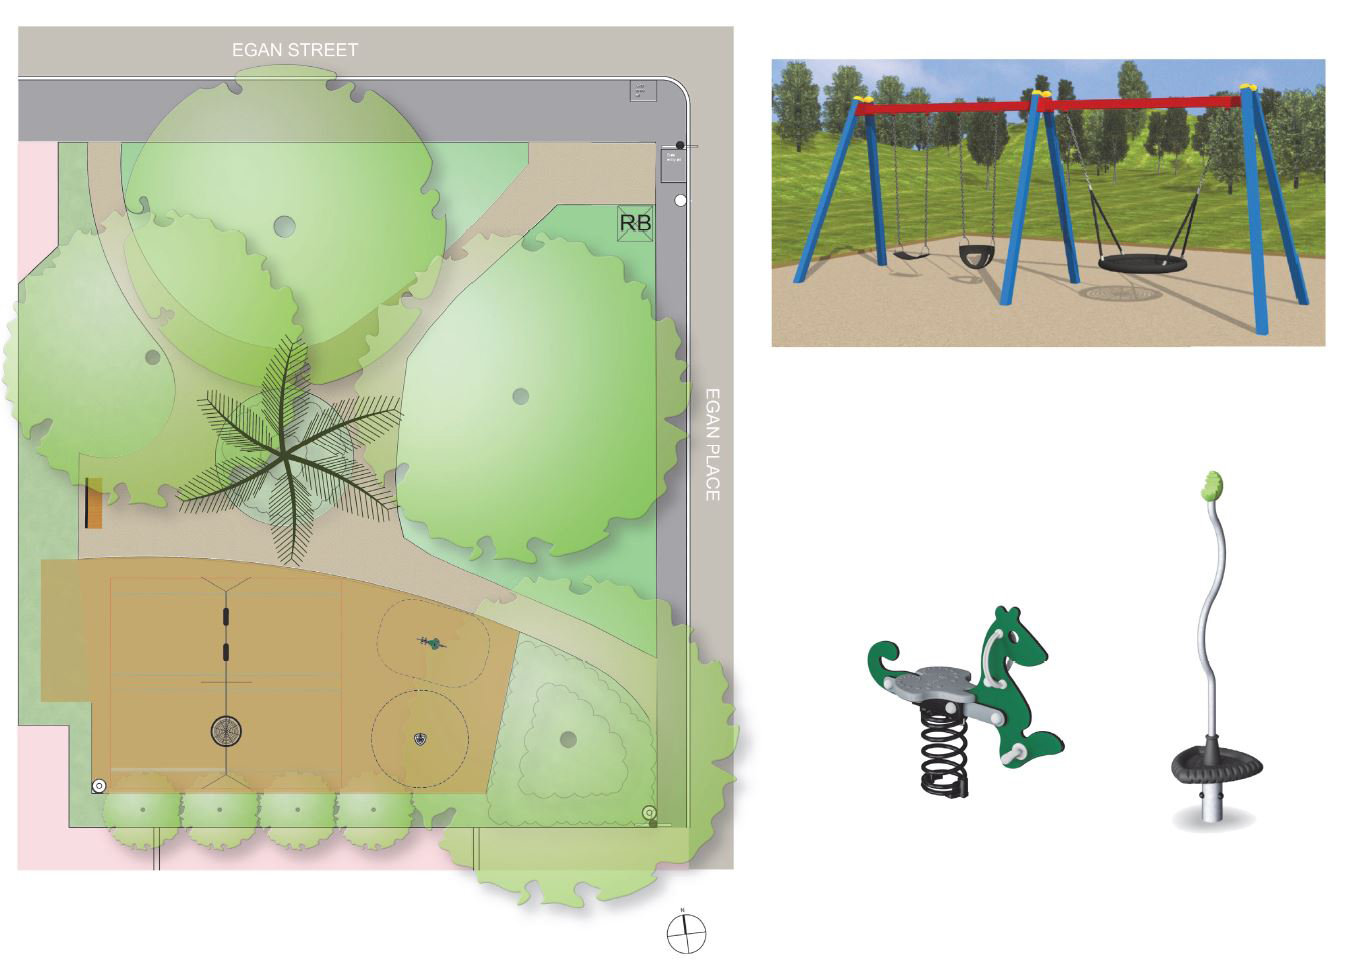 Park design, featuring double and basket swing, rocker and spinner